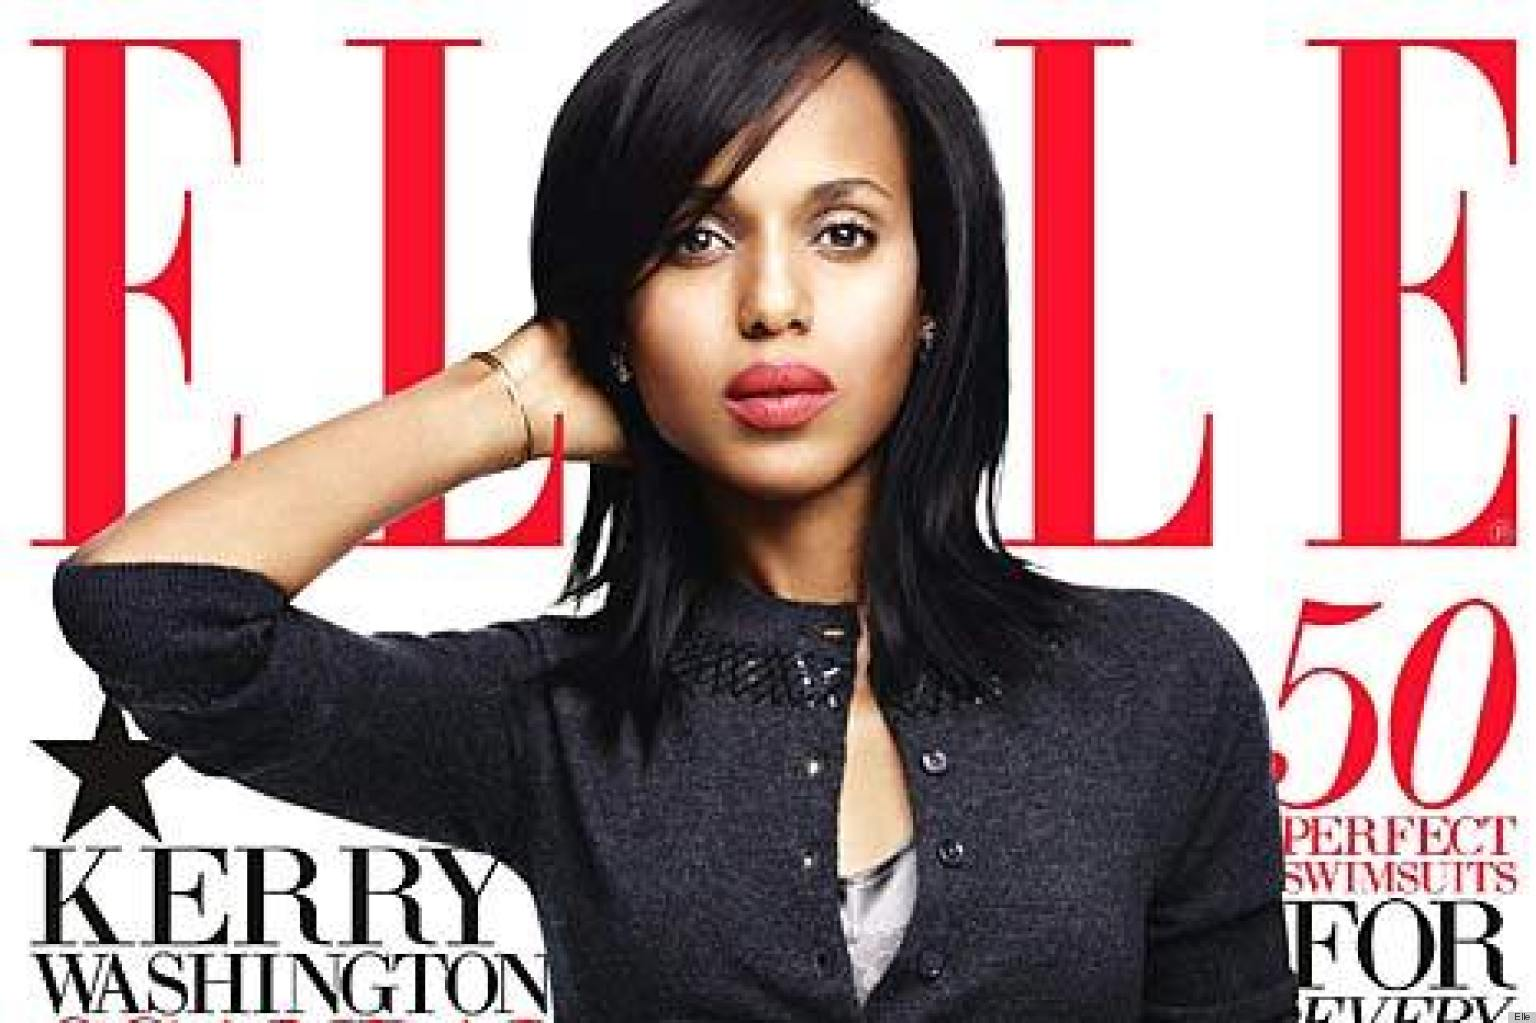 PHOTO: Kerry Washington's Elle Cover Has Finally Arrived!